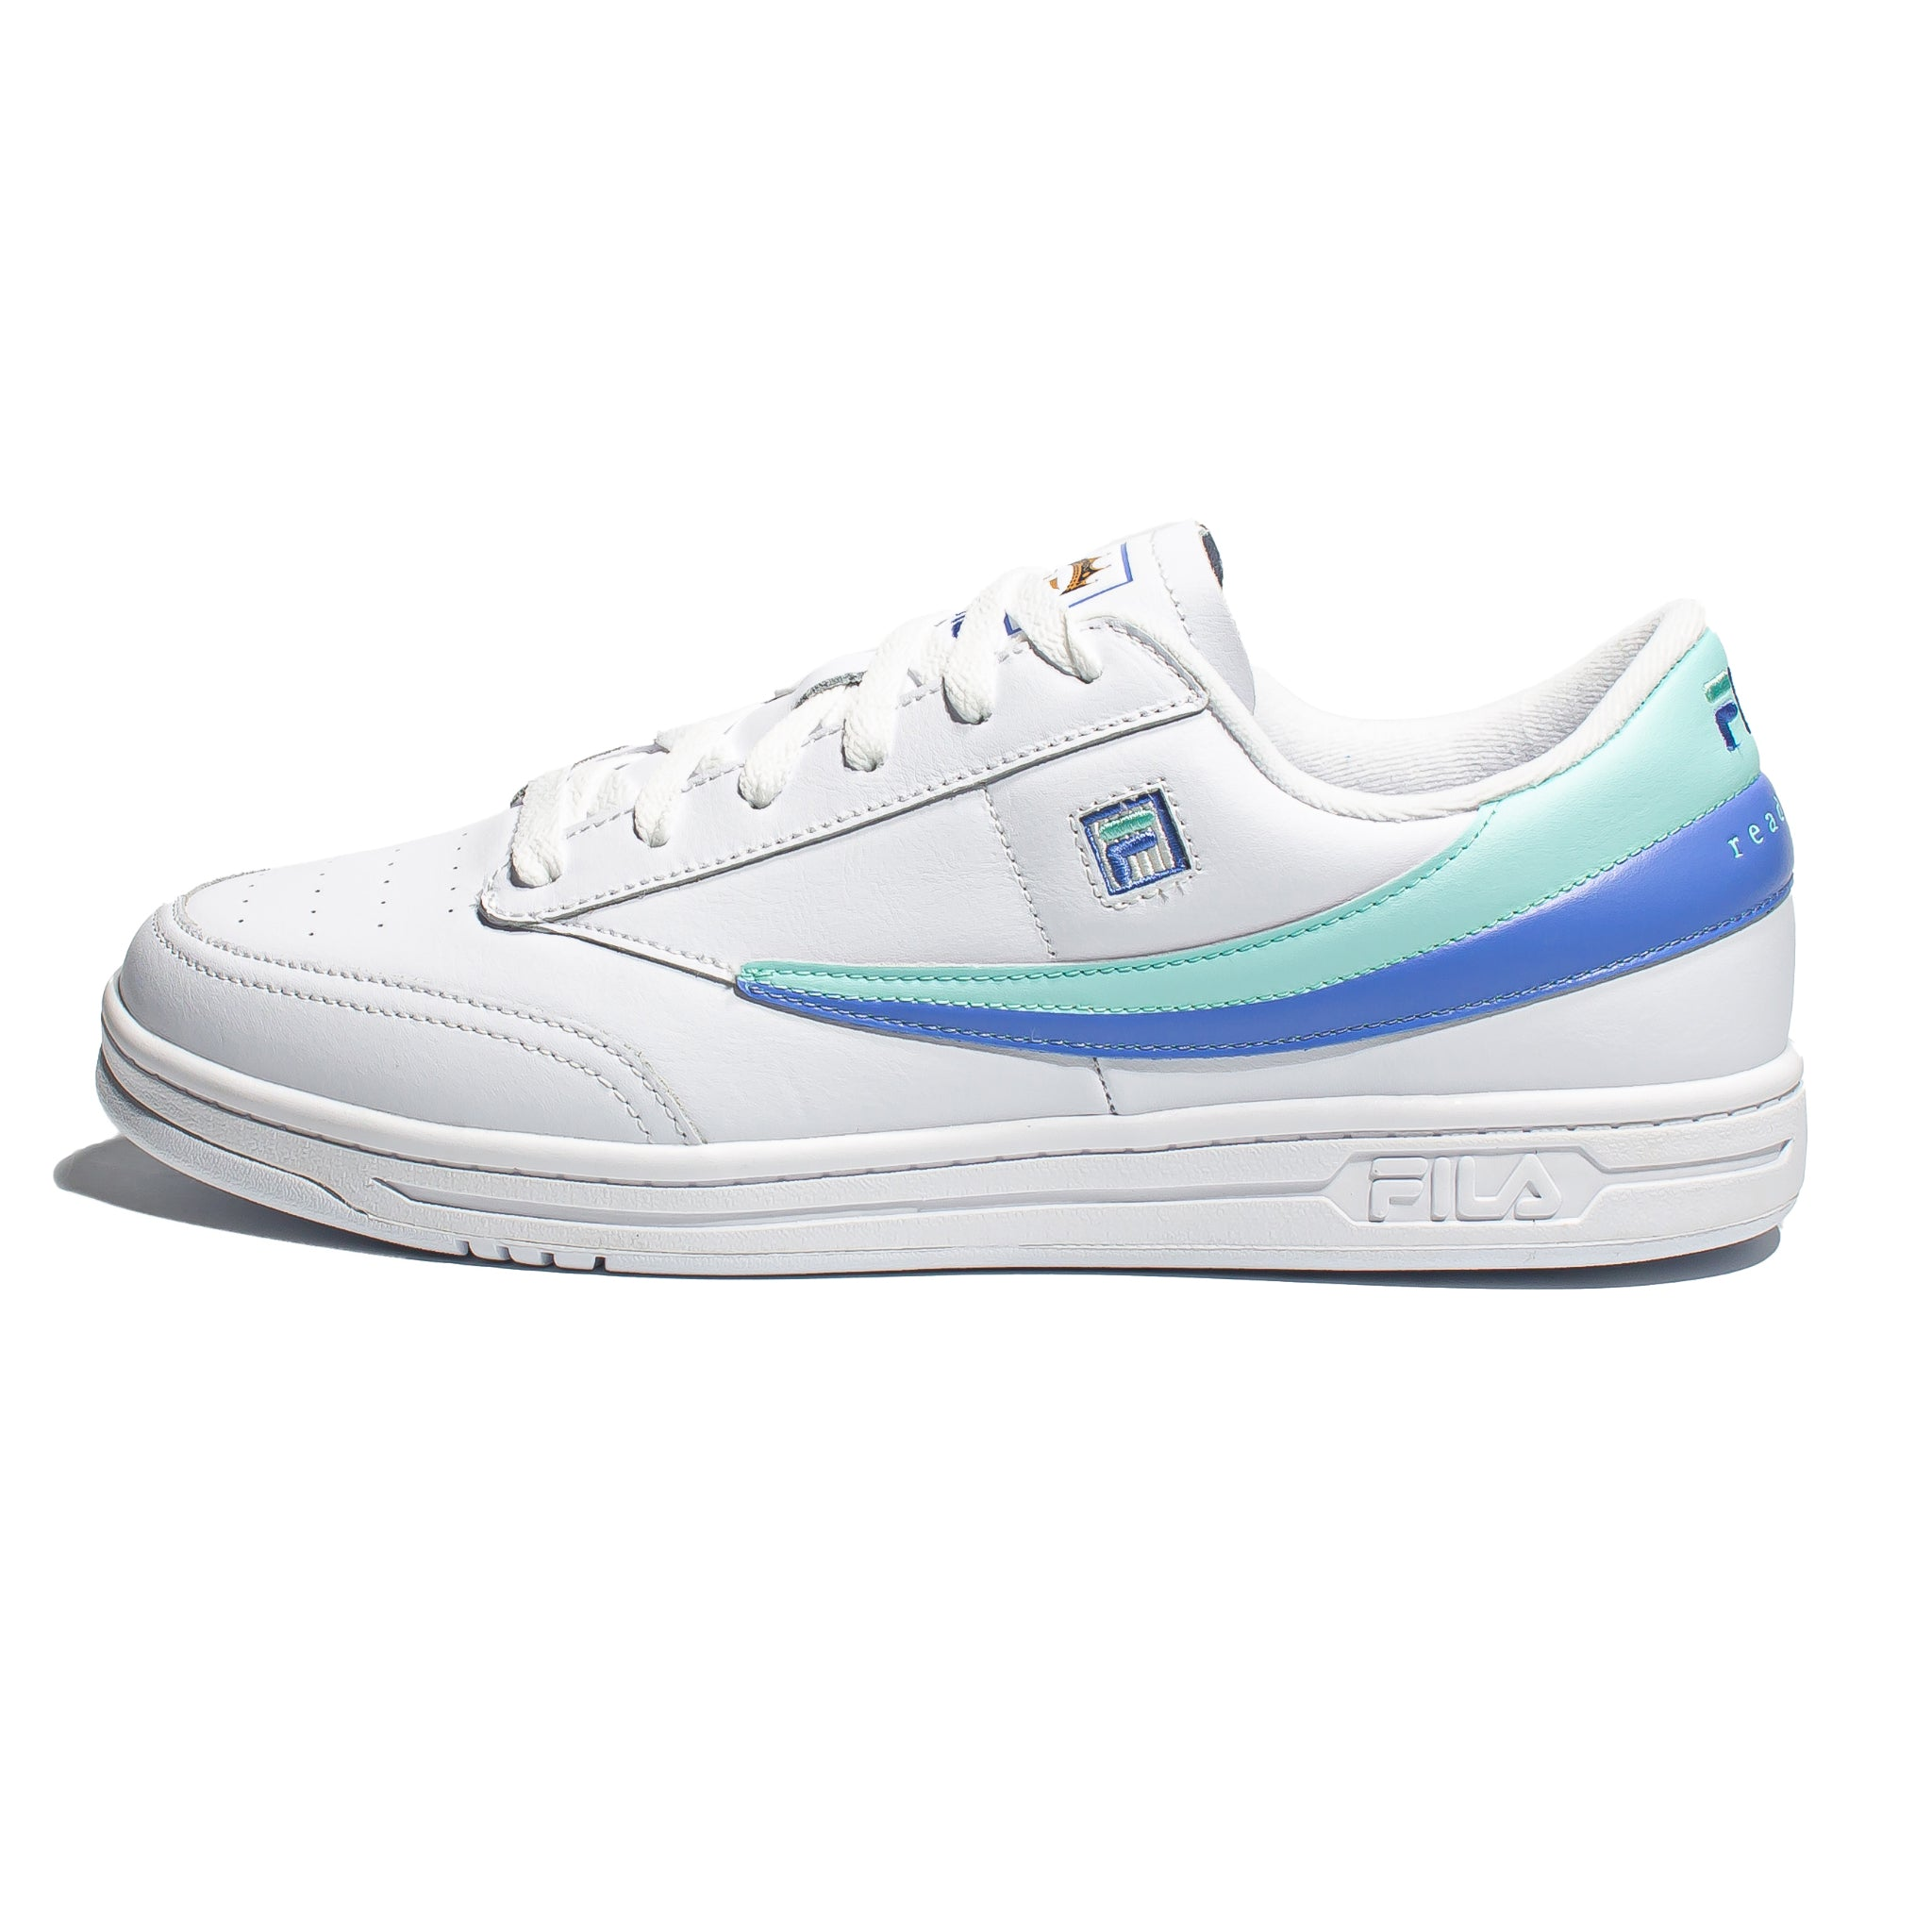 Fila x Biggie 'Ready to Die' Tennis 88 White/Blue